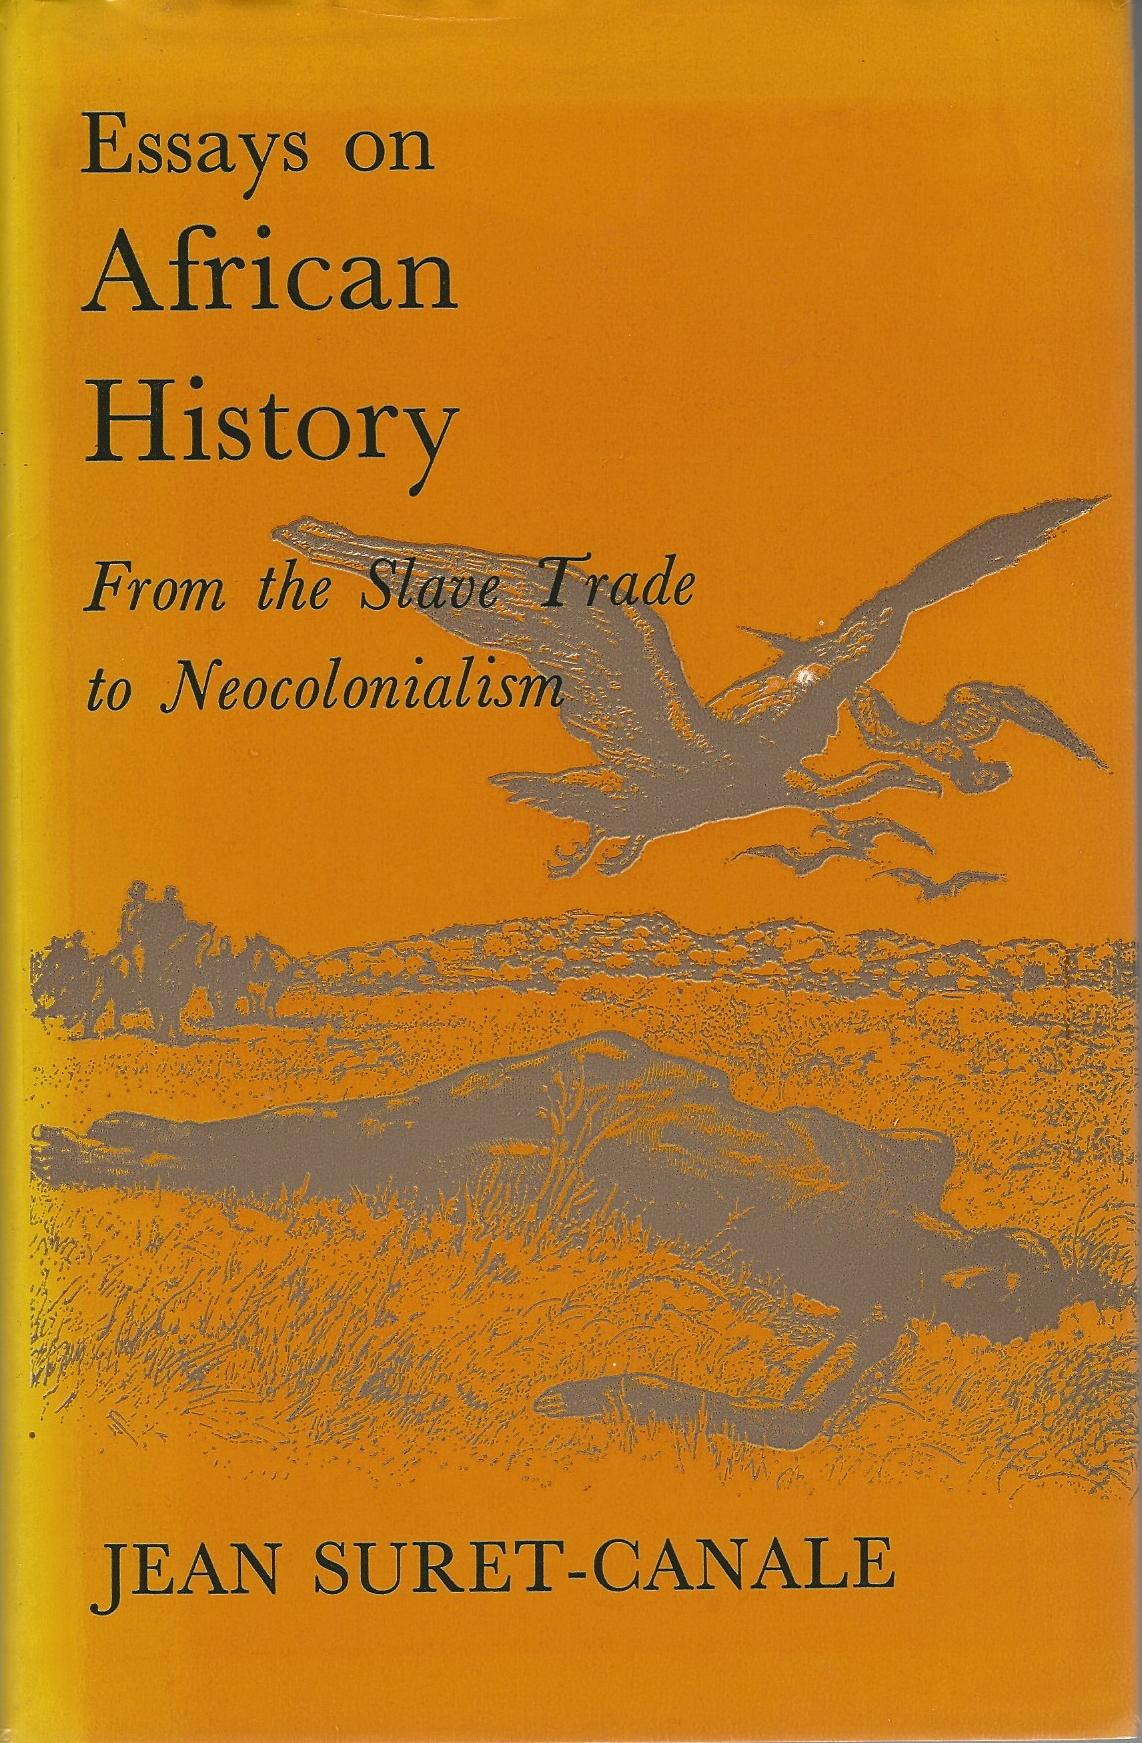 Image for Essays on African History: From the Slave Trade to Neocolonialism.